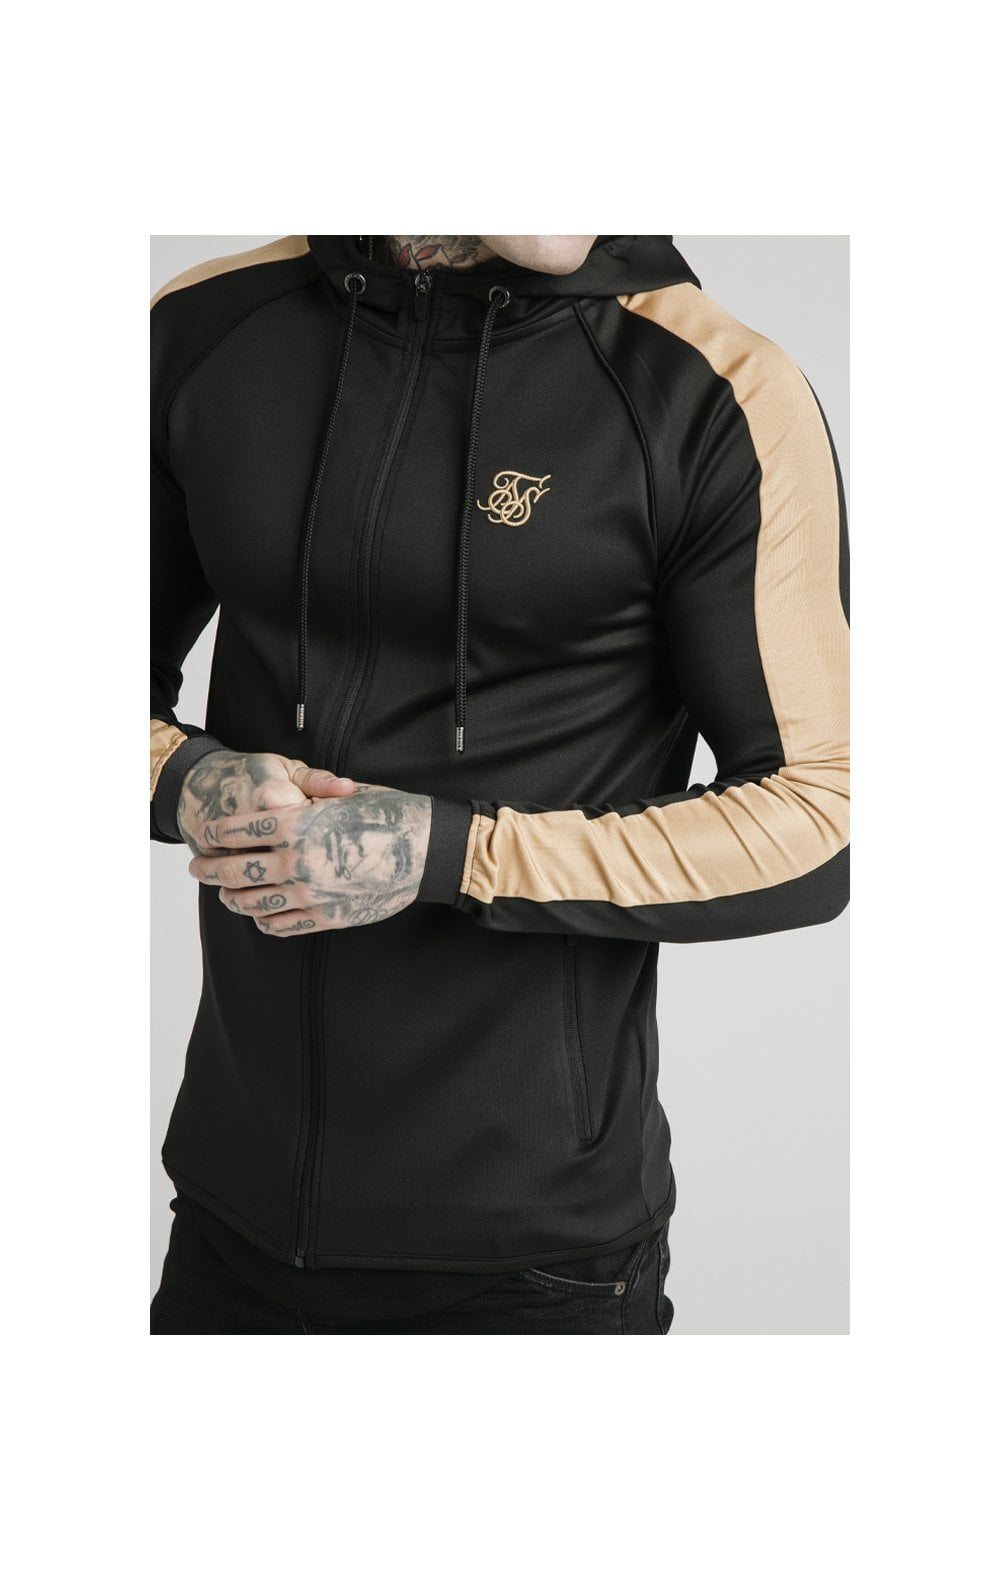 Laden Sie das Bild in den Galerie-Viewer, SikSilk Scope Cartel Kapuzenpullover Schließung Satin - Schwarz und Gold (1)